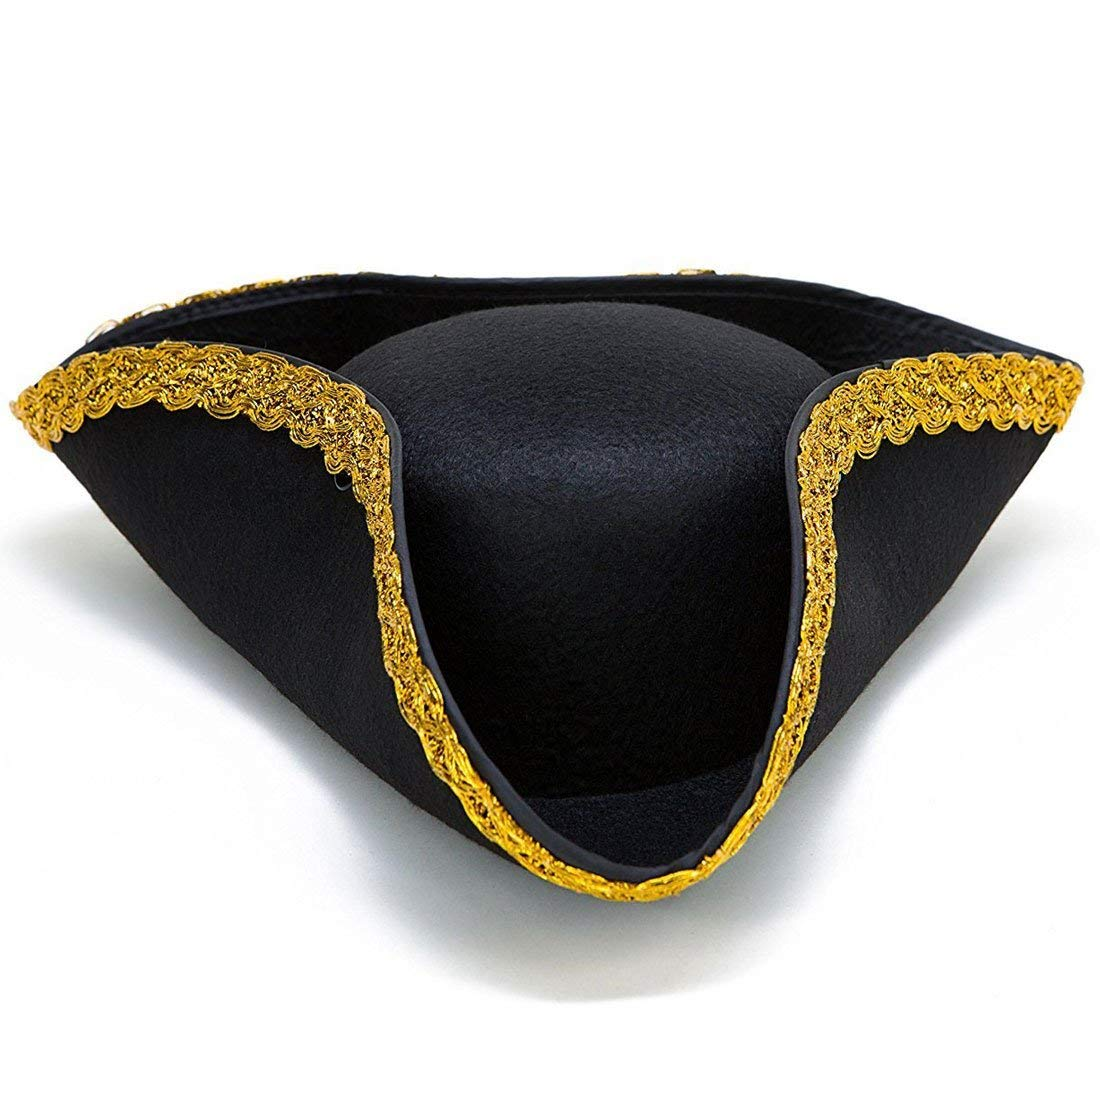 Toy Cubby Colonial Tricorn Hat - 17th Century Revolutionary War Pirate Hat Costume Accessory - Party Favor Dress up Hat - Single Pack - Black with Gold Trim